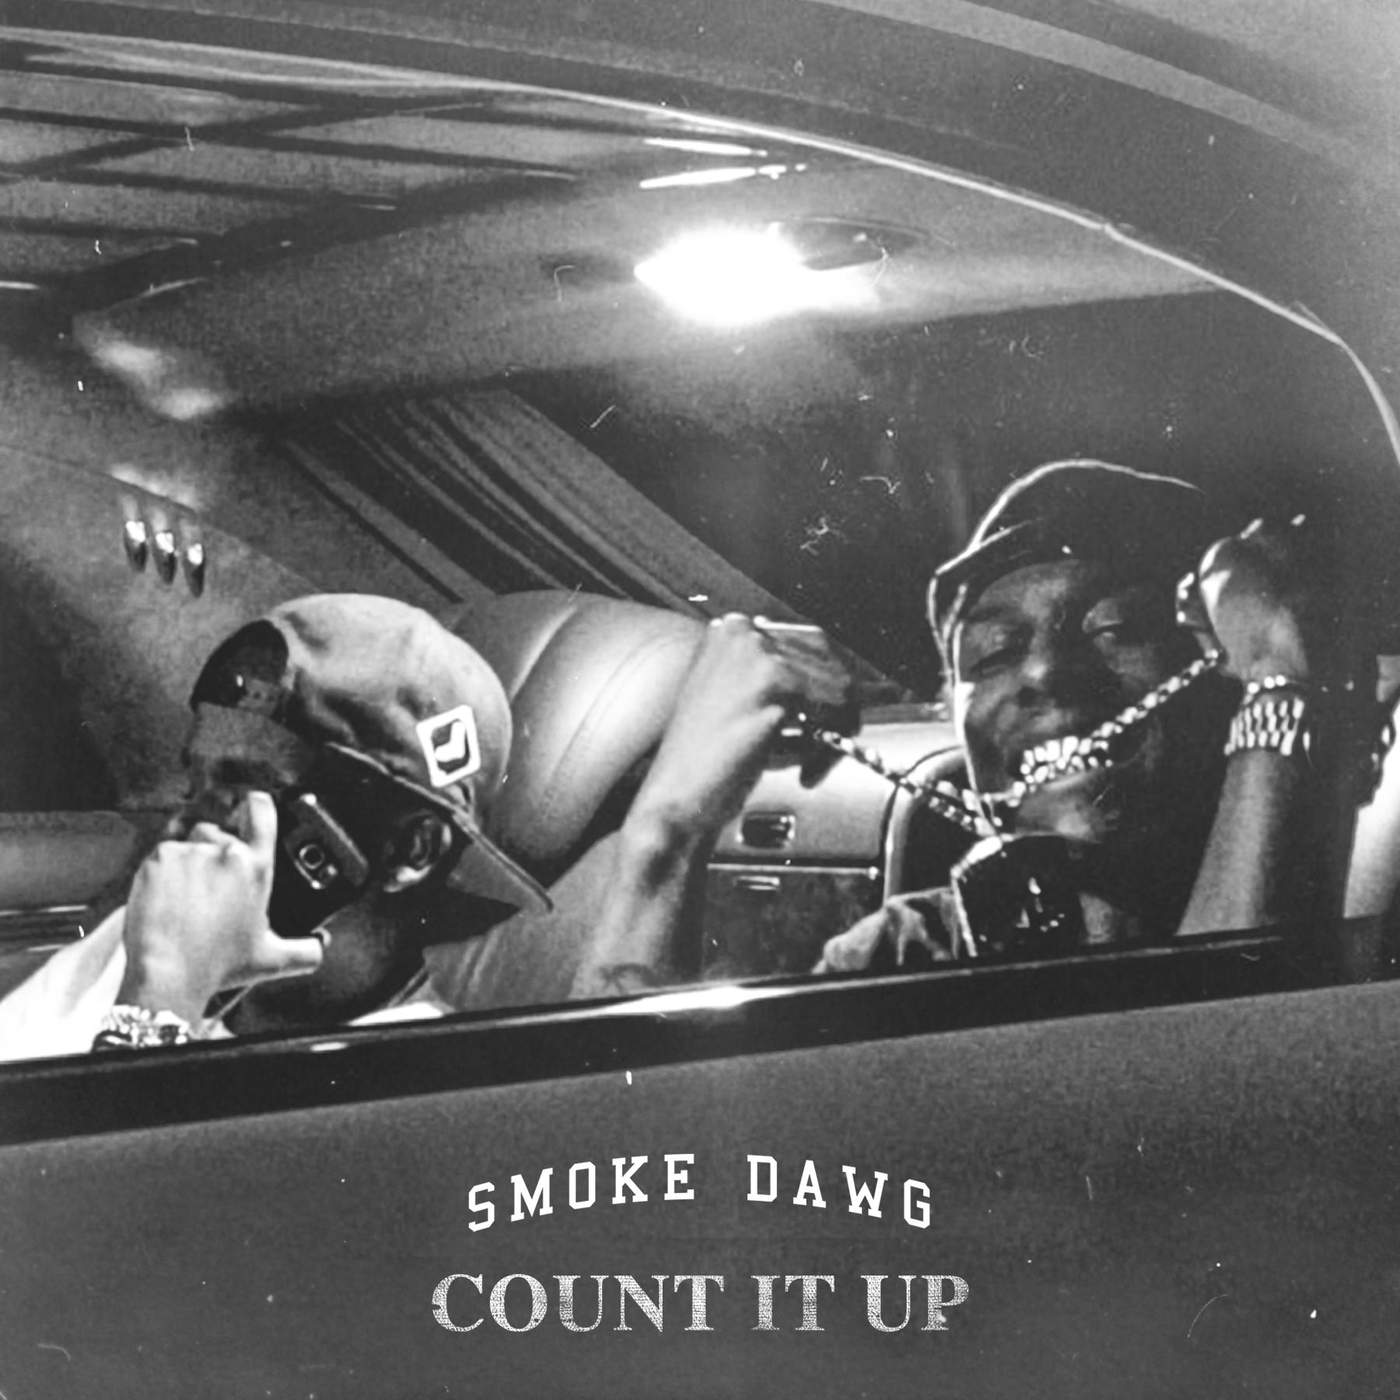 Smoke Dawg - Count It Up - Single Cover